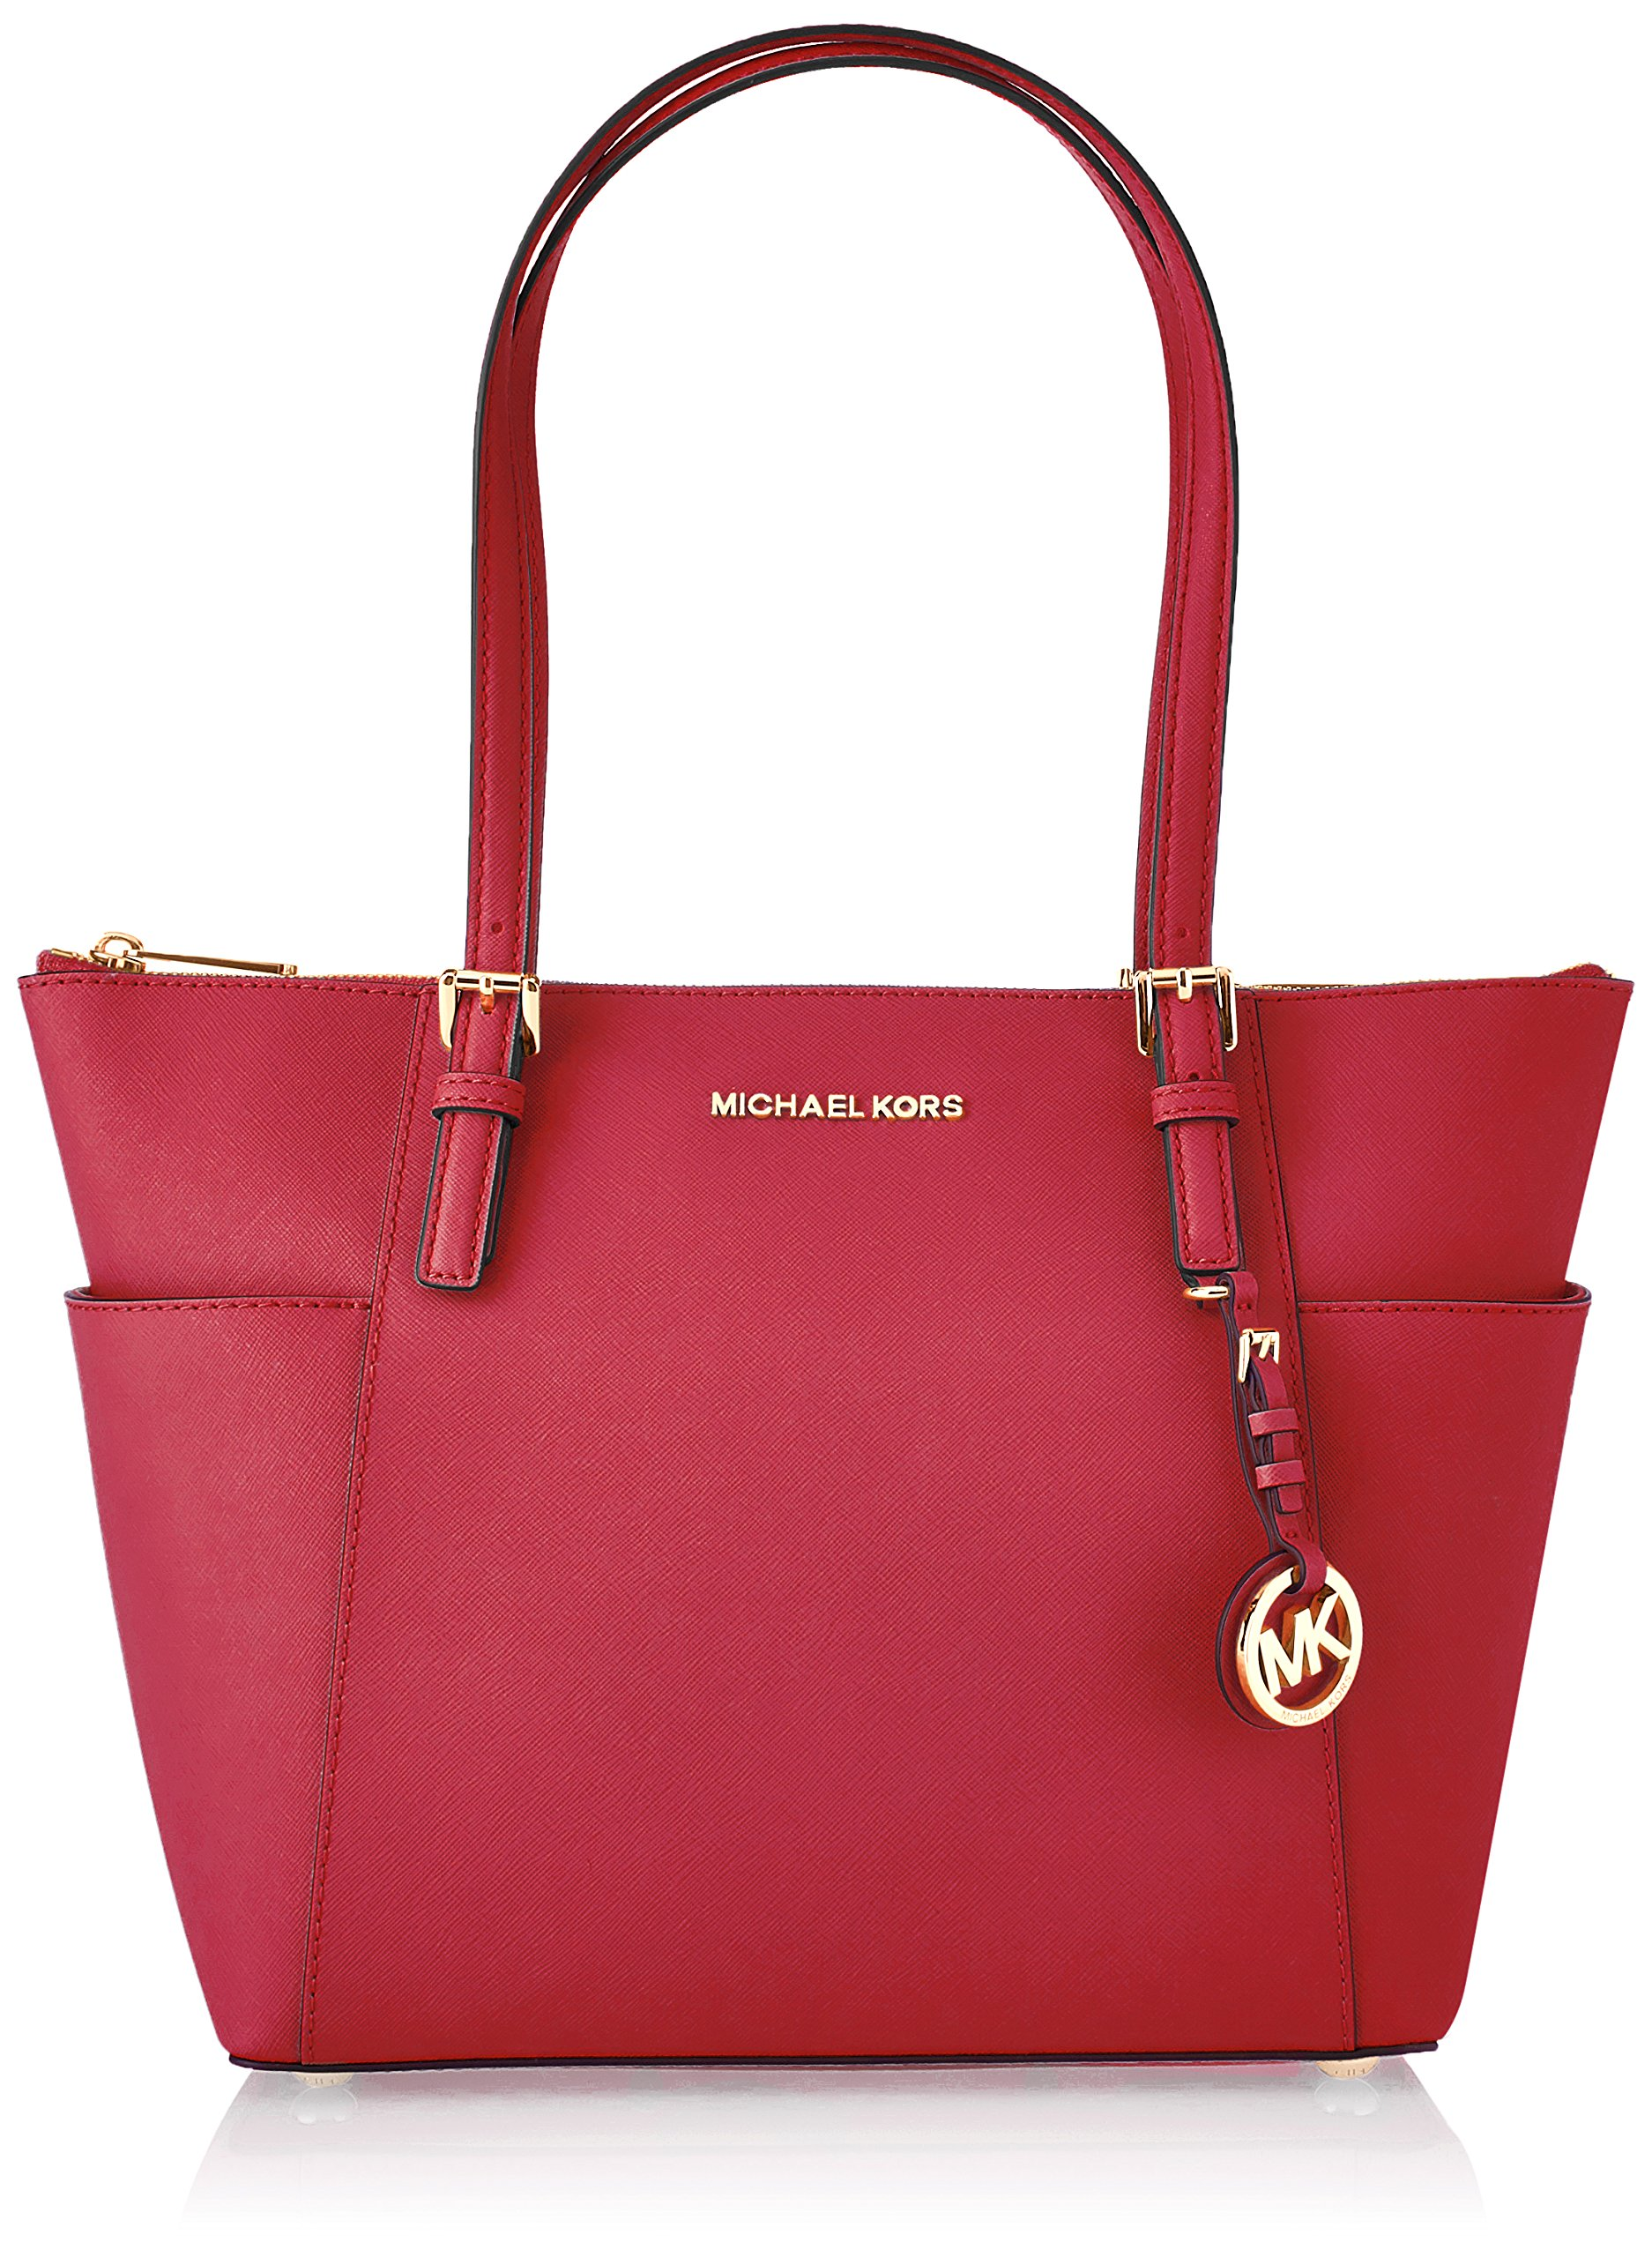 534cd9c28a75e Galleon - Michael Kors Womens Jet Set Item Ew Tz Tote Tote Pink (Ultra Pink)